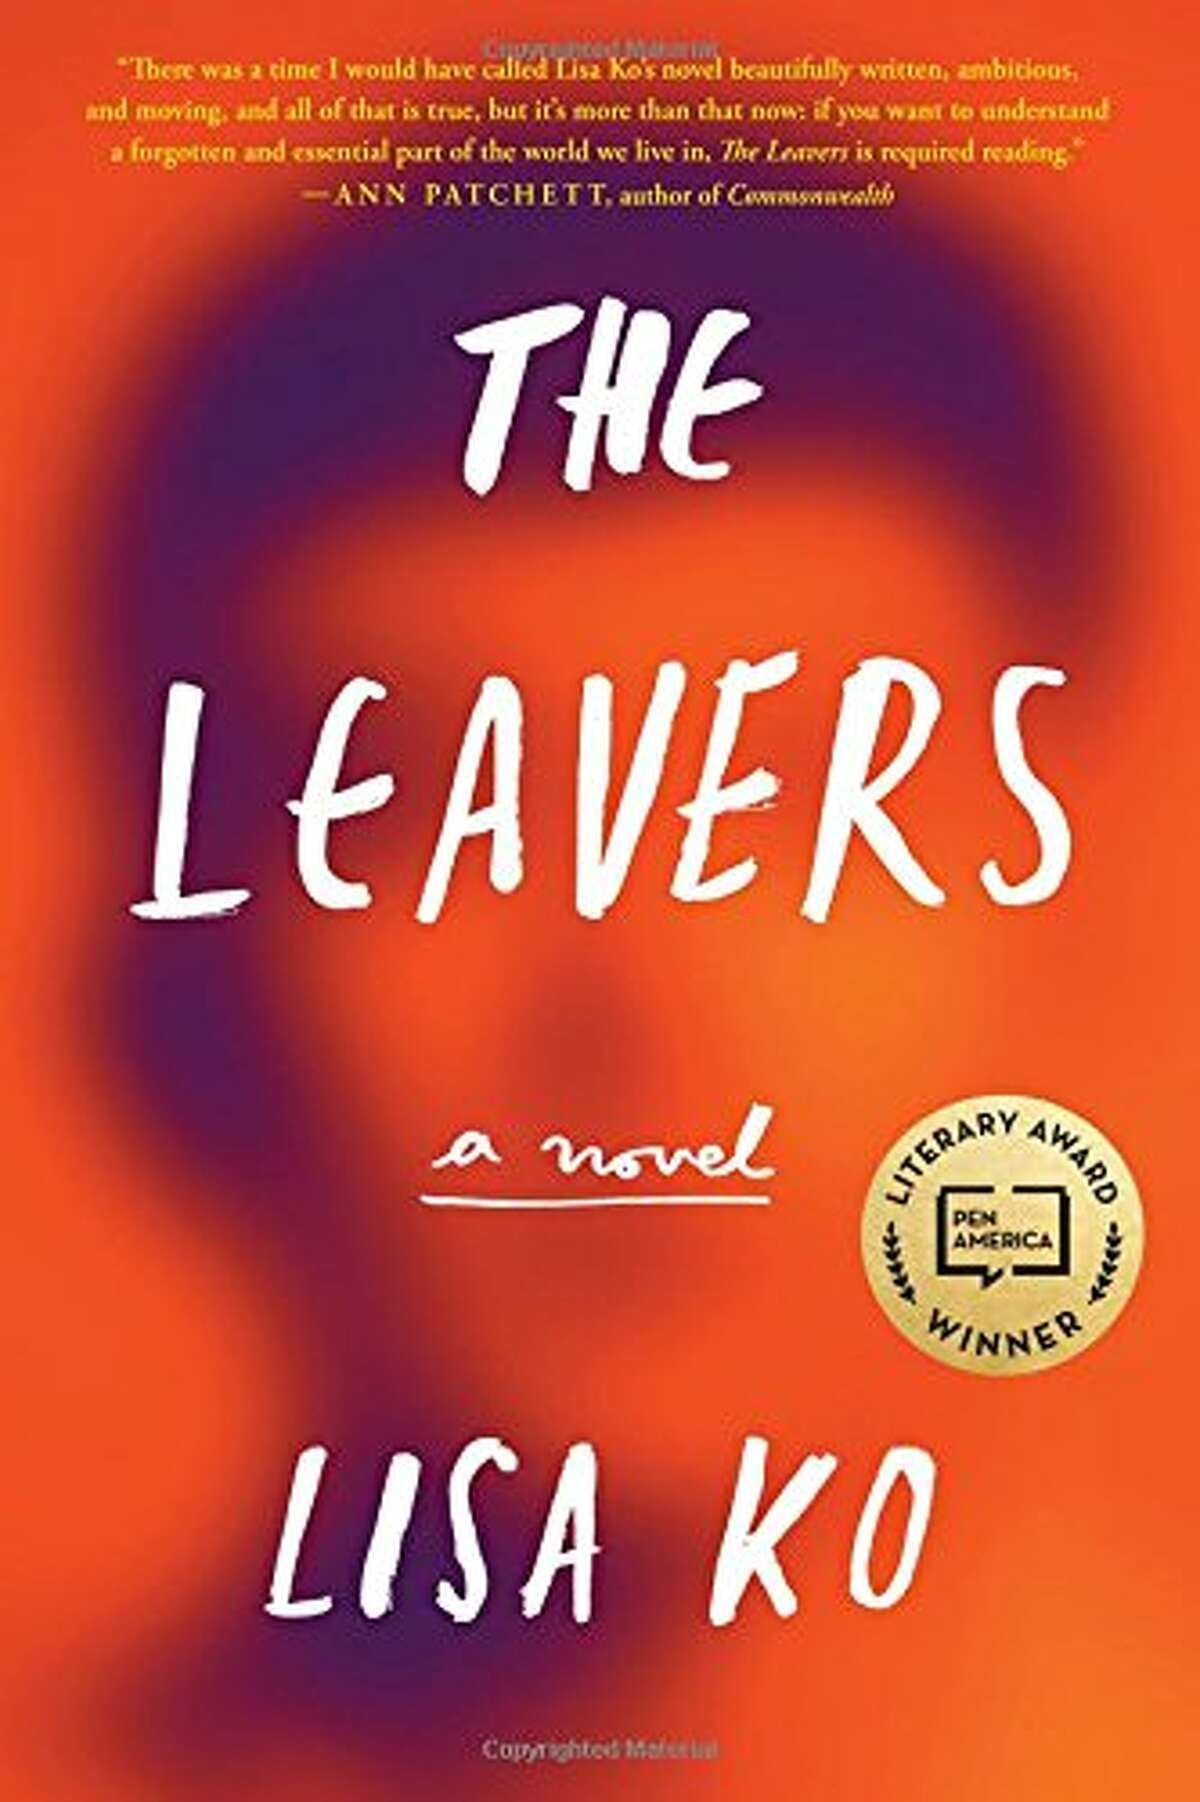 The Leavers by Lisa Ko (May 2) Eleven-year-old Deming's mother, an undocumented Chinese immigrant, goes to work at the nail salon one day and never comes back. He's taken in by a white couple and renamed Daniel, but he struggles to fit his past and his identity into his present. Opening lines: